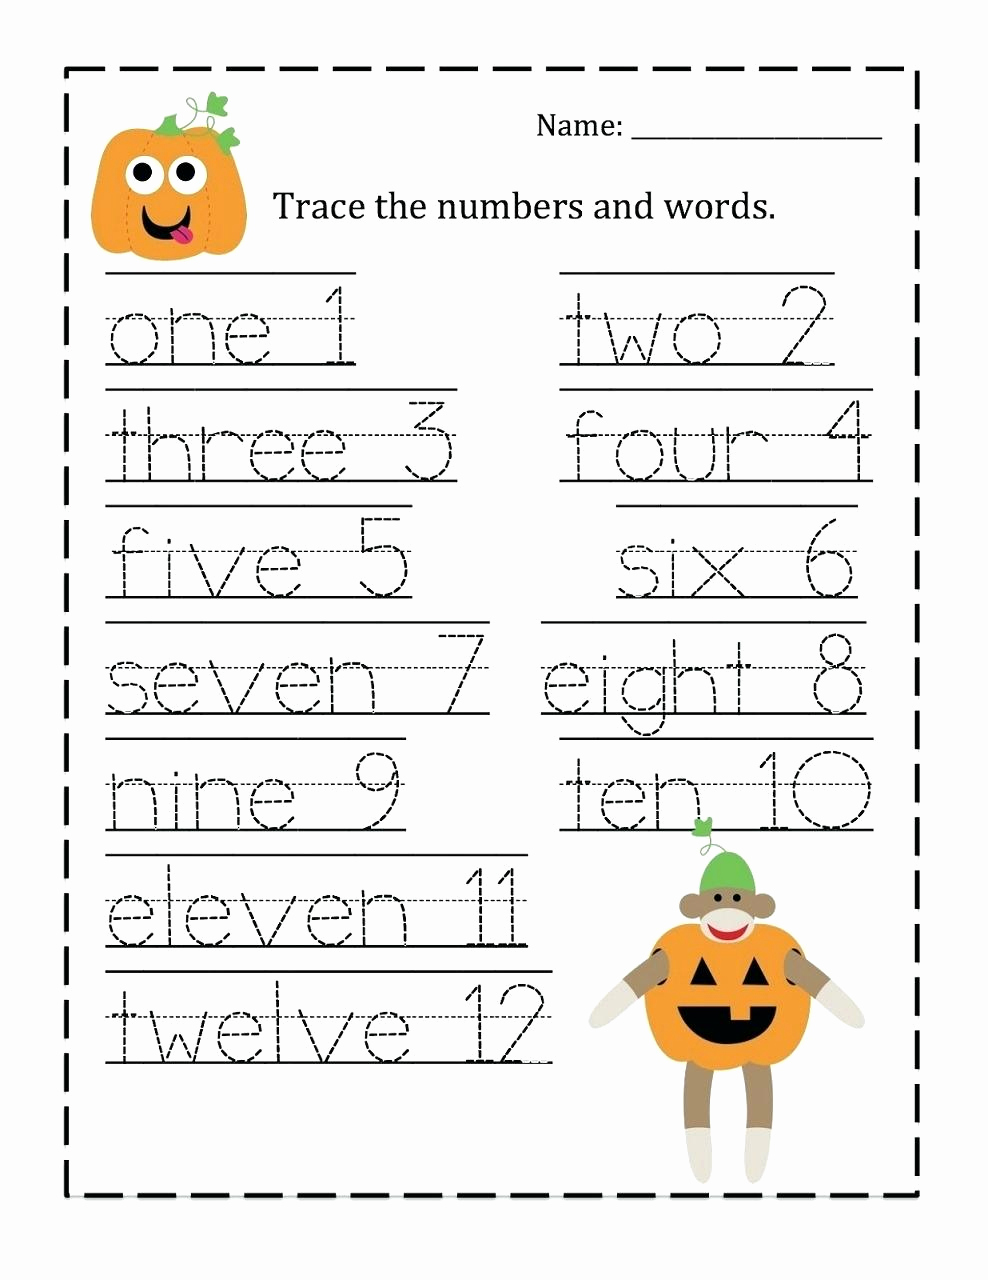 Pre Writing Worksheets Free Inspirational Name Handwriting Worksheets to Learning Name Handwriting